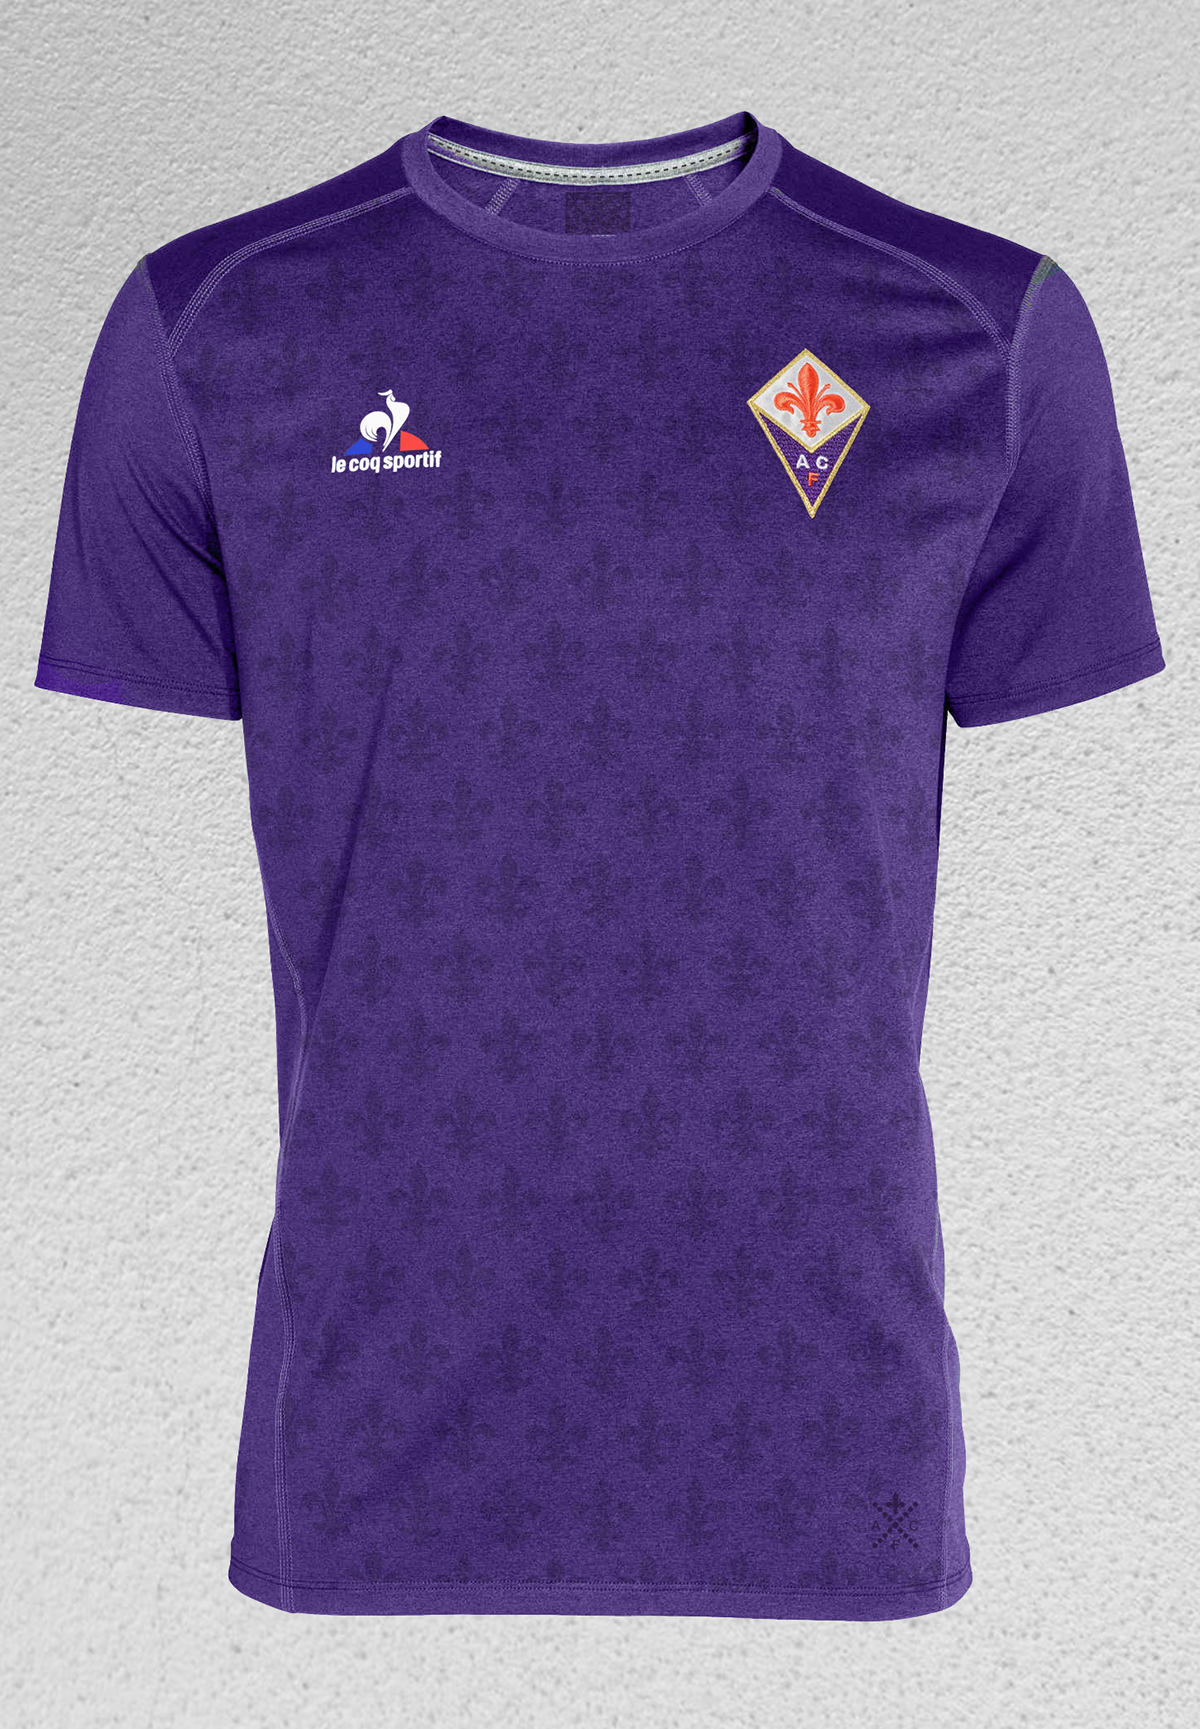 Save to Collection. Follow Following Unfollow. AC Fiorentina Le Coq Sportif  ... 0af2b380c